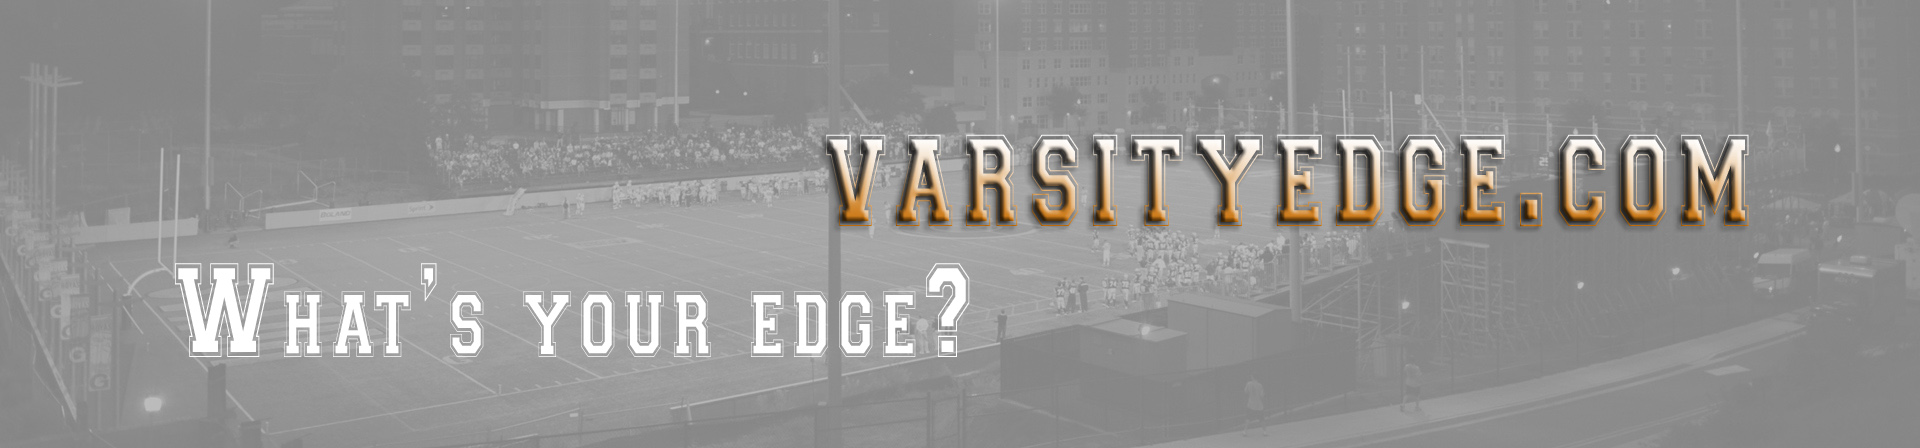 Varsityedge.com College Athletic Recruiting Process